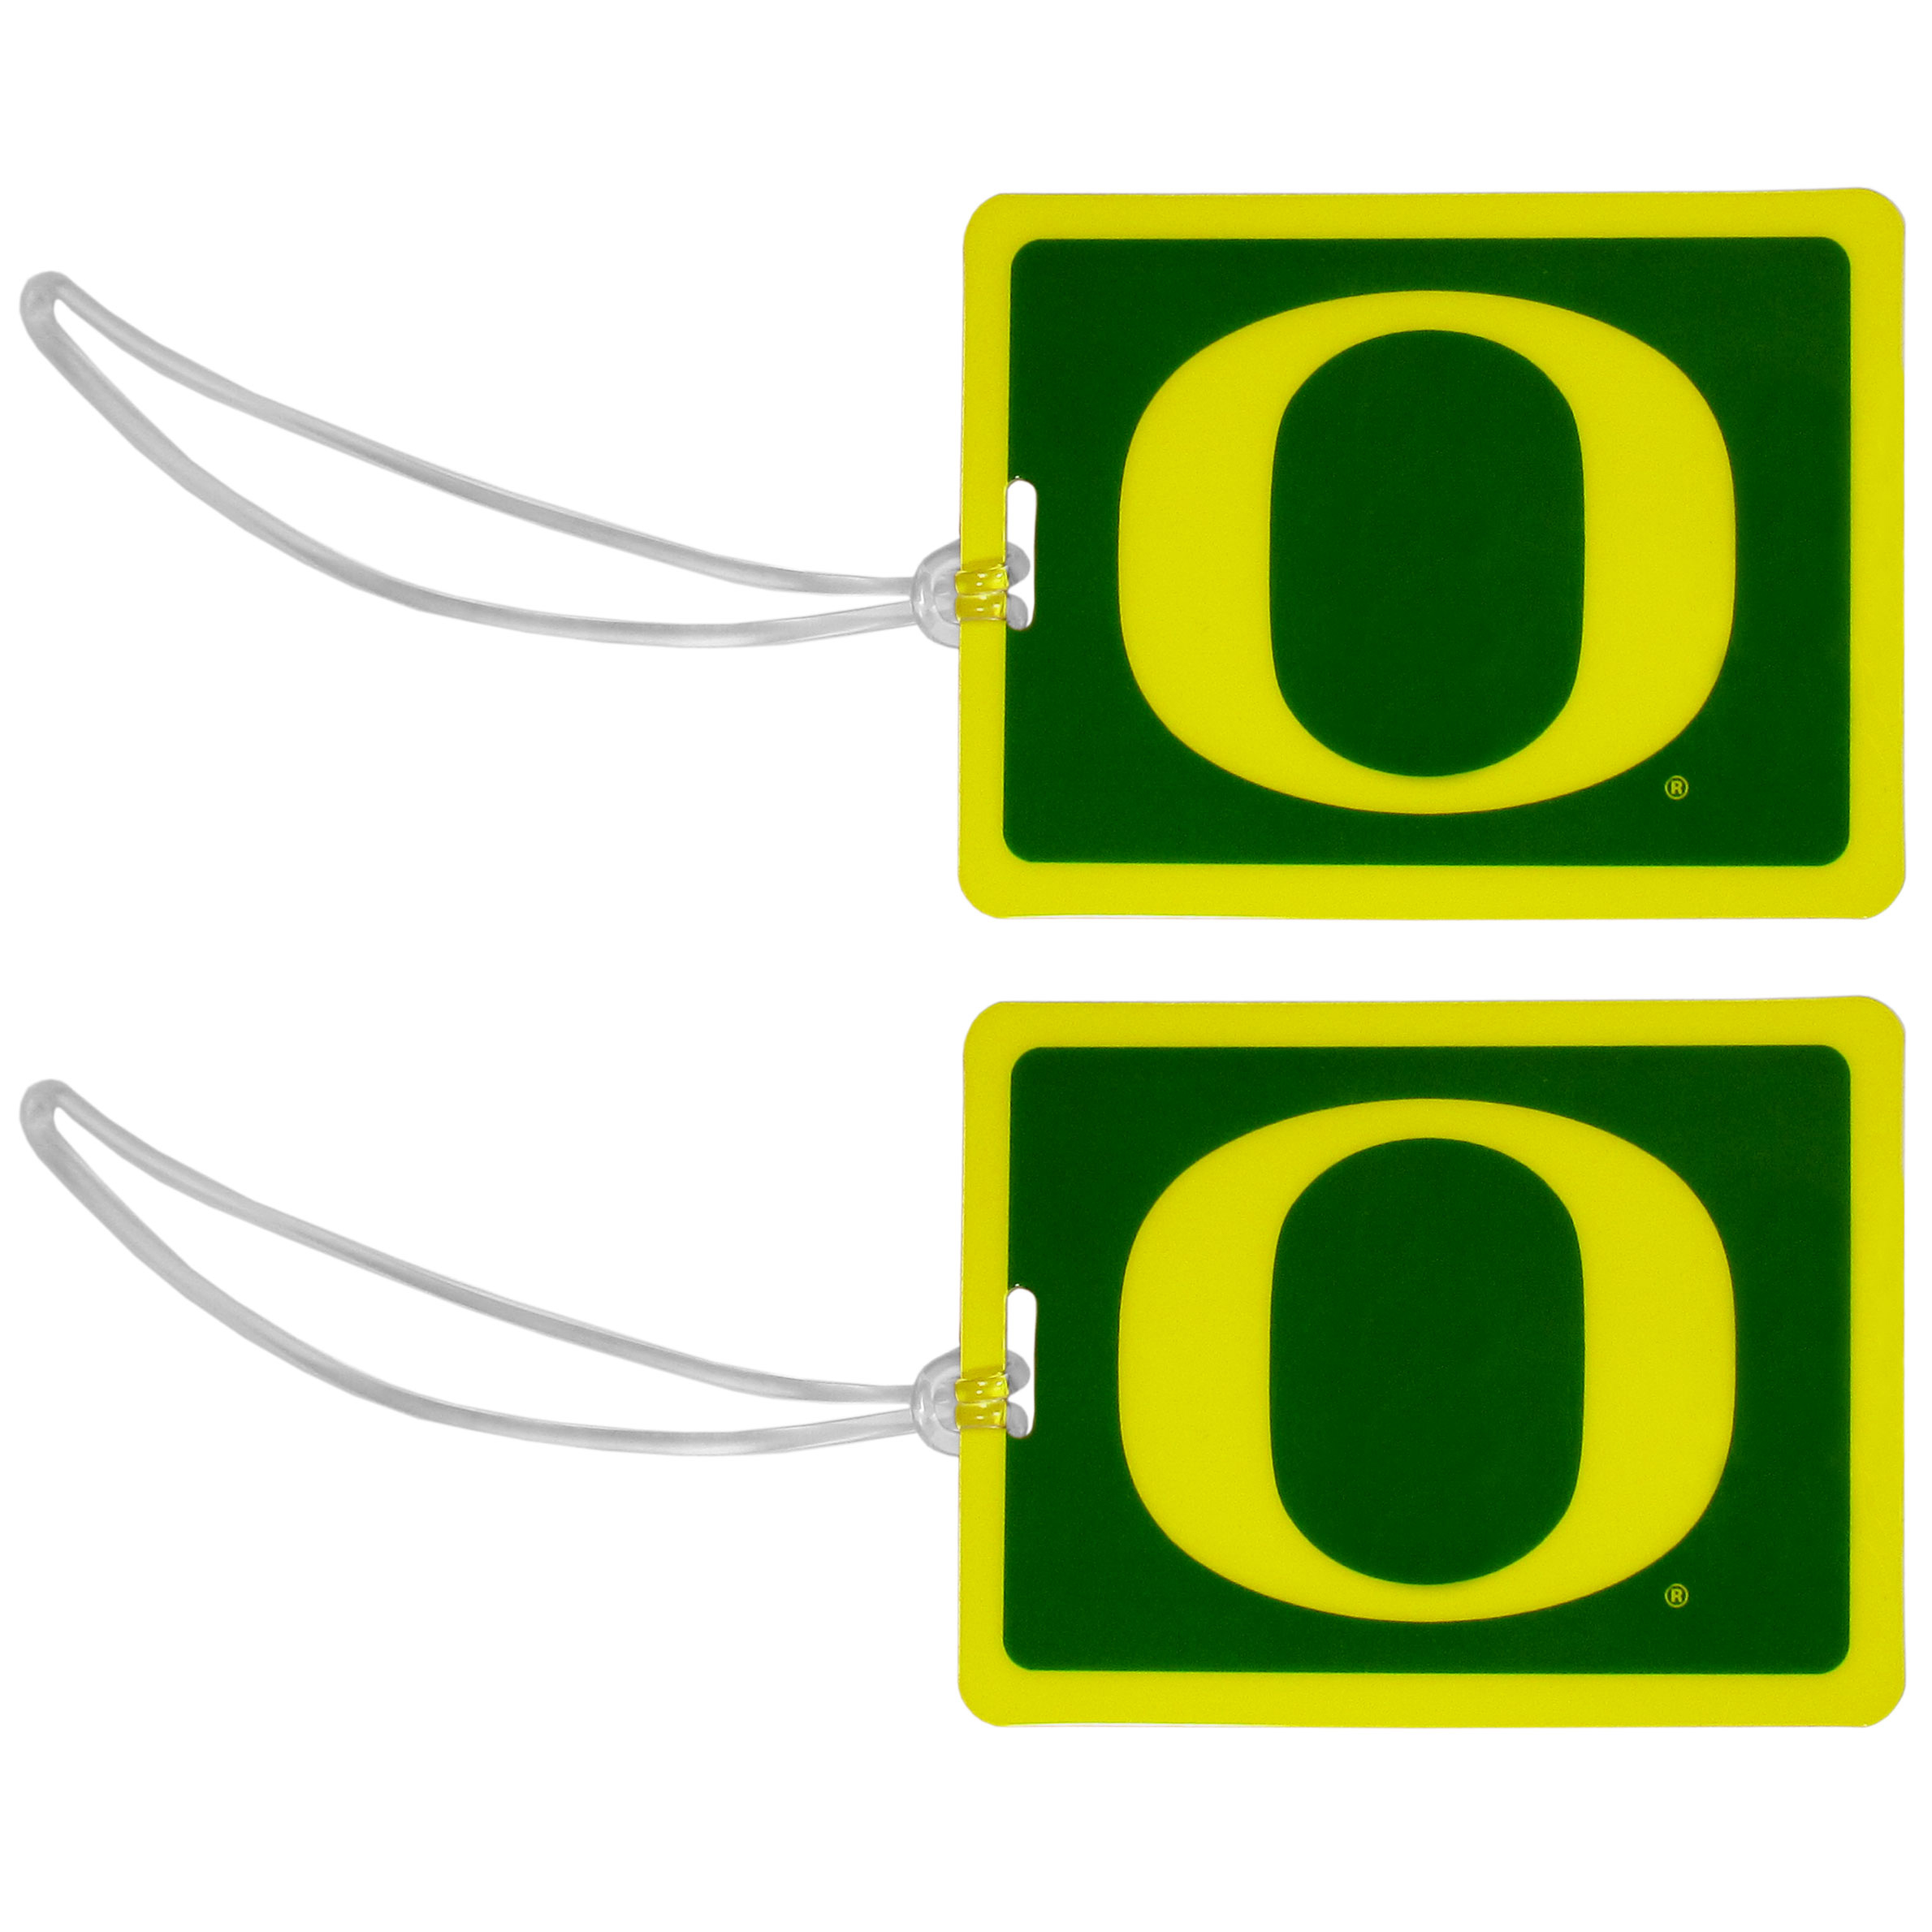 Oregon Ducks Vinyl Luggage Tag, 2pk - Tired of trying to spot your suitcase or bag in a sea of luggage? Try our large and colorful Oregon Ducks luggage tags. The tag is 4x3 inches and has a 5 inch cord to attach it easily to your bags, backpacks or luggage. The front of the tag features the team logo in a bright, team colored background and you can write you name, address and phone number on the back of the tag.